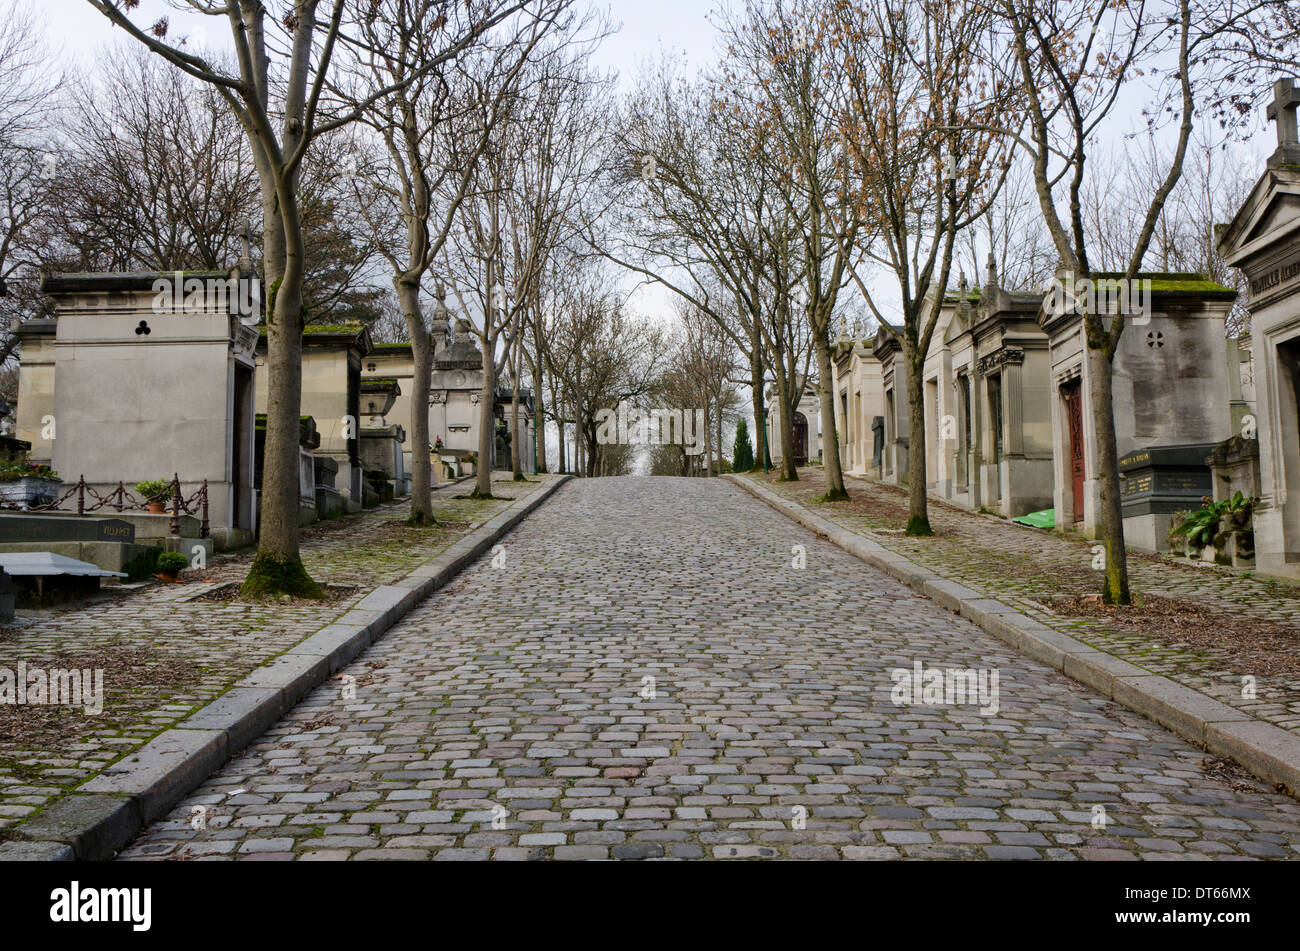 View of the Pere Lachaise, the largest Cemetery in Paris, France. Stock Photo